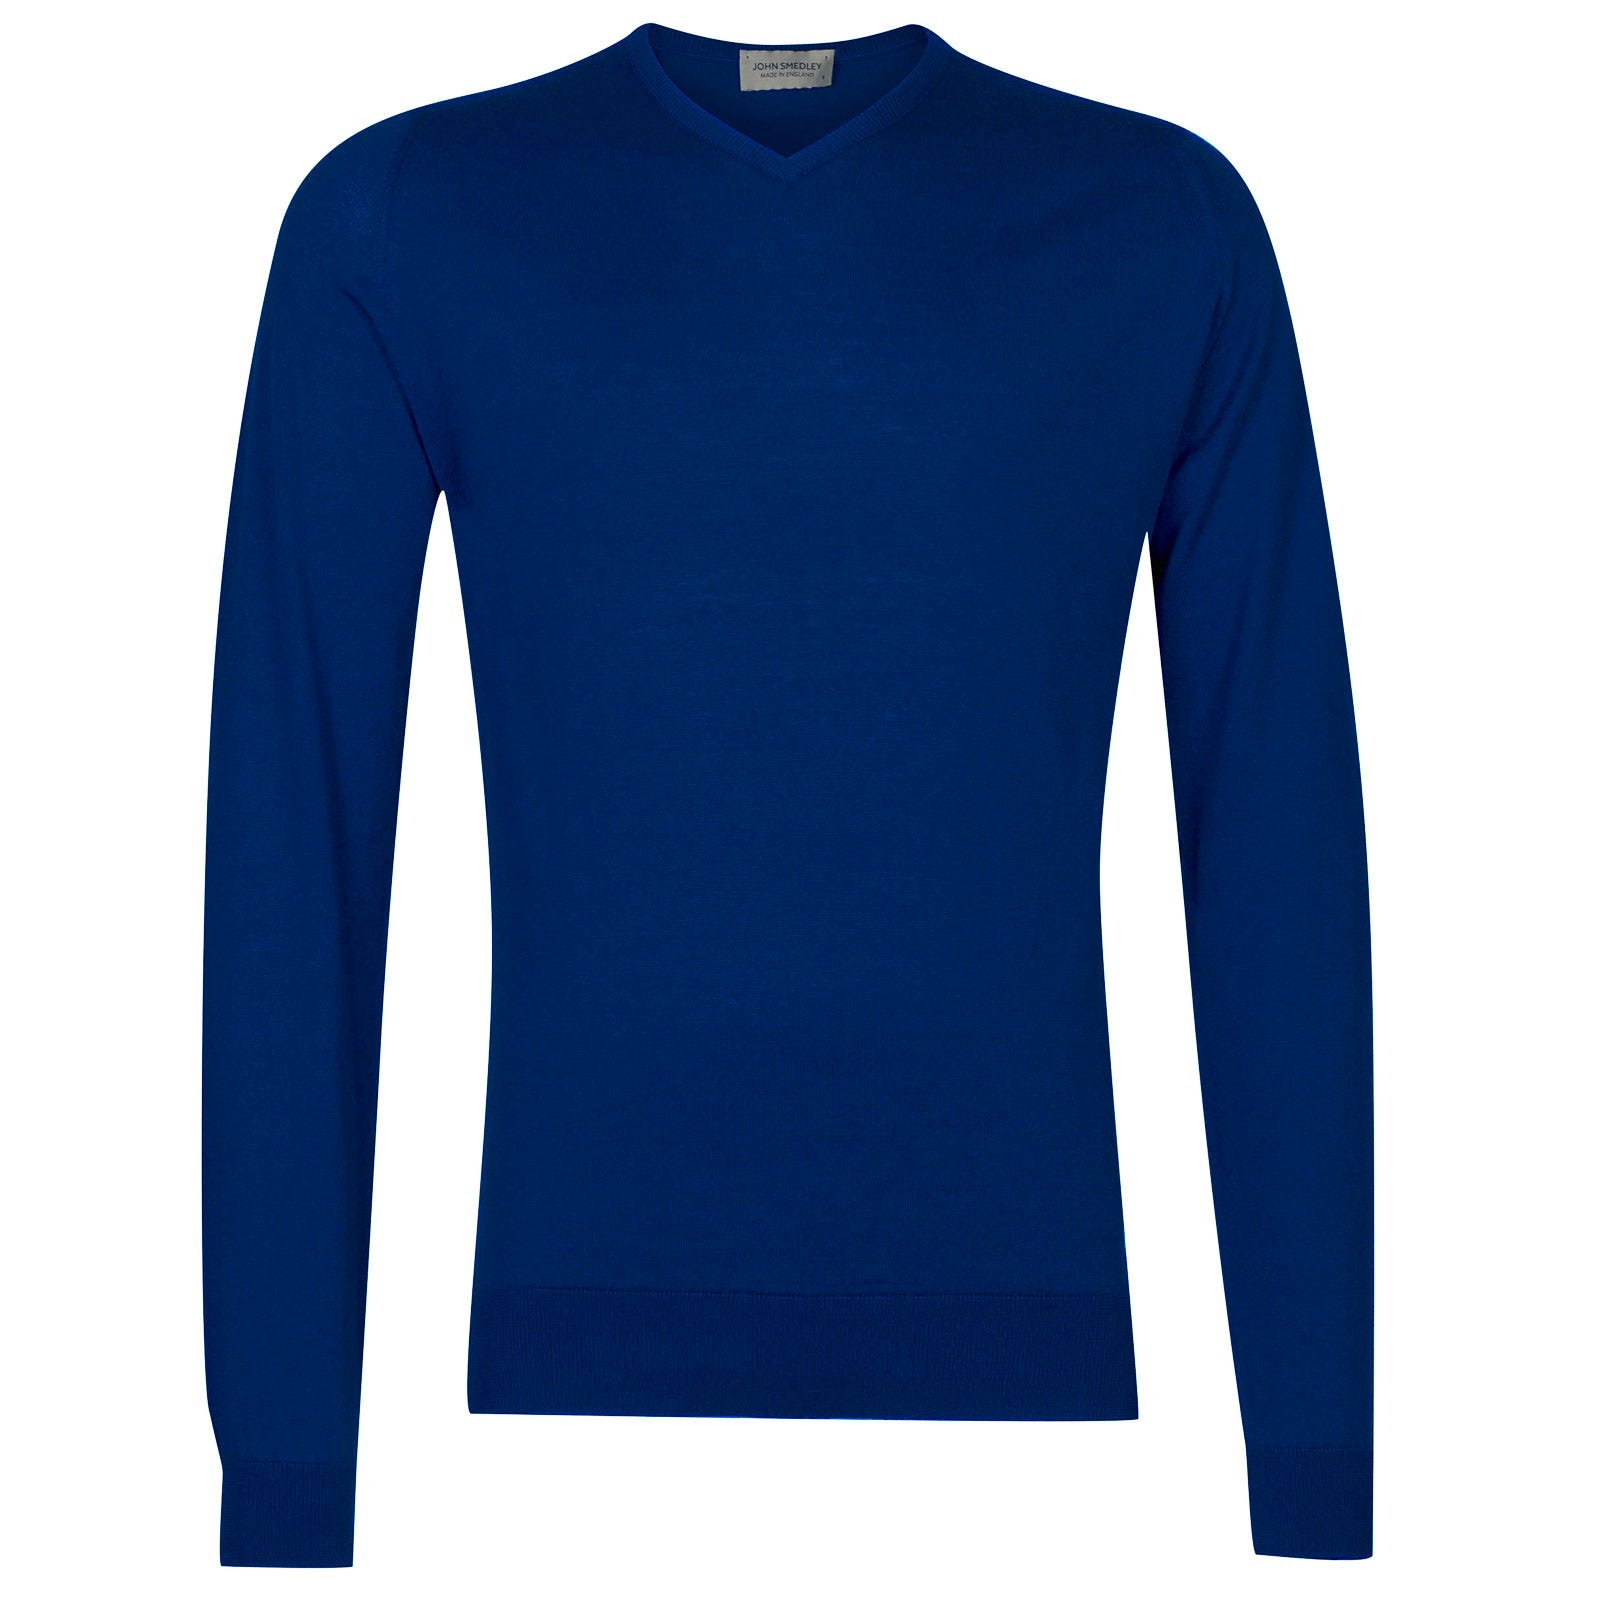 John Smedley Aydon Sea Island Cotton Pullover in Coniston Blue-M